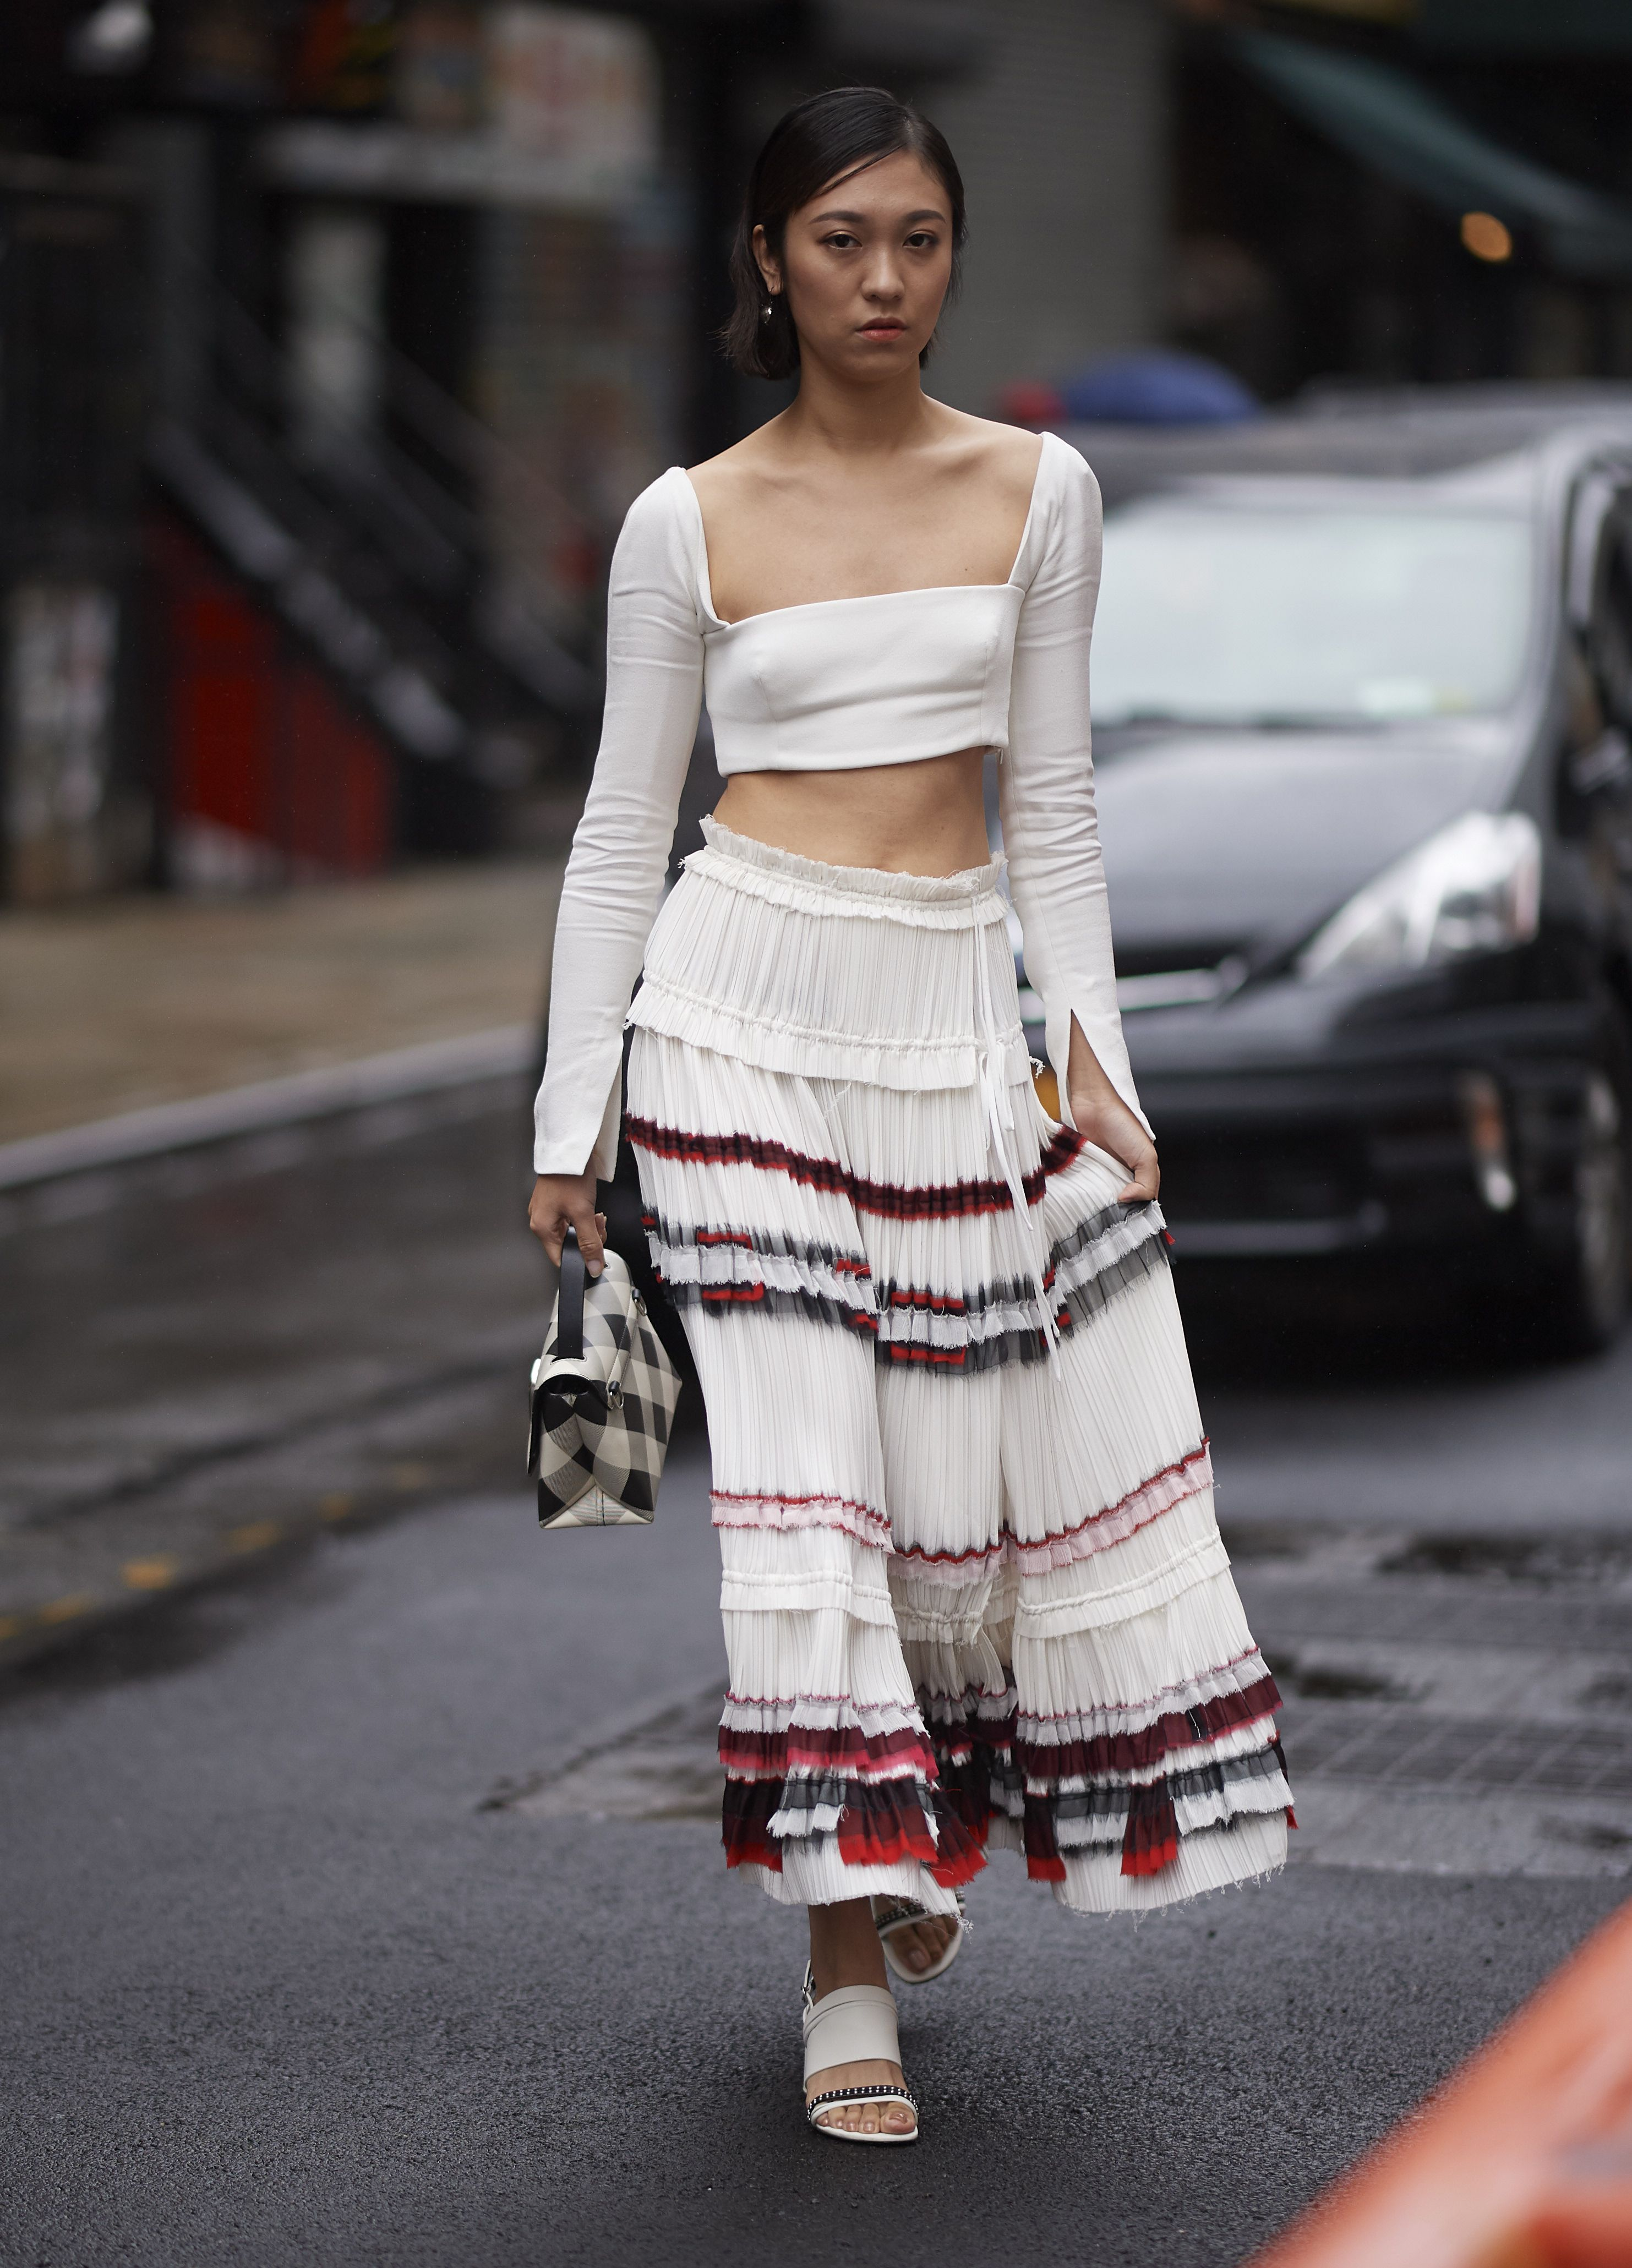 0886fff510 Cute Crop Top Outfit Ideas - What to Wear With a Crop Top